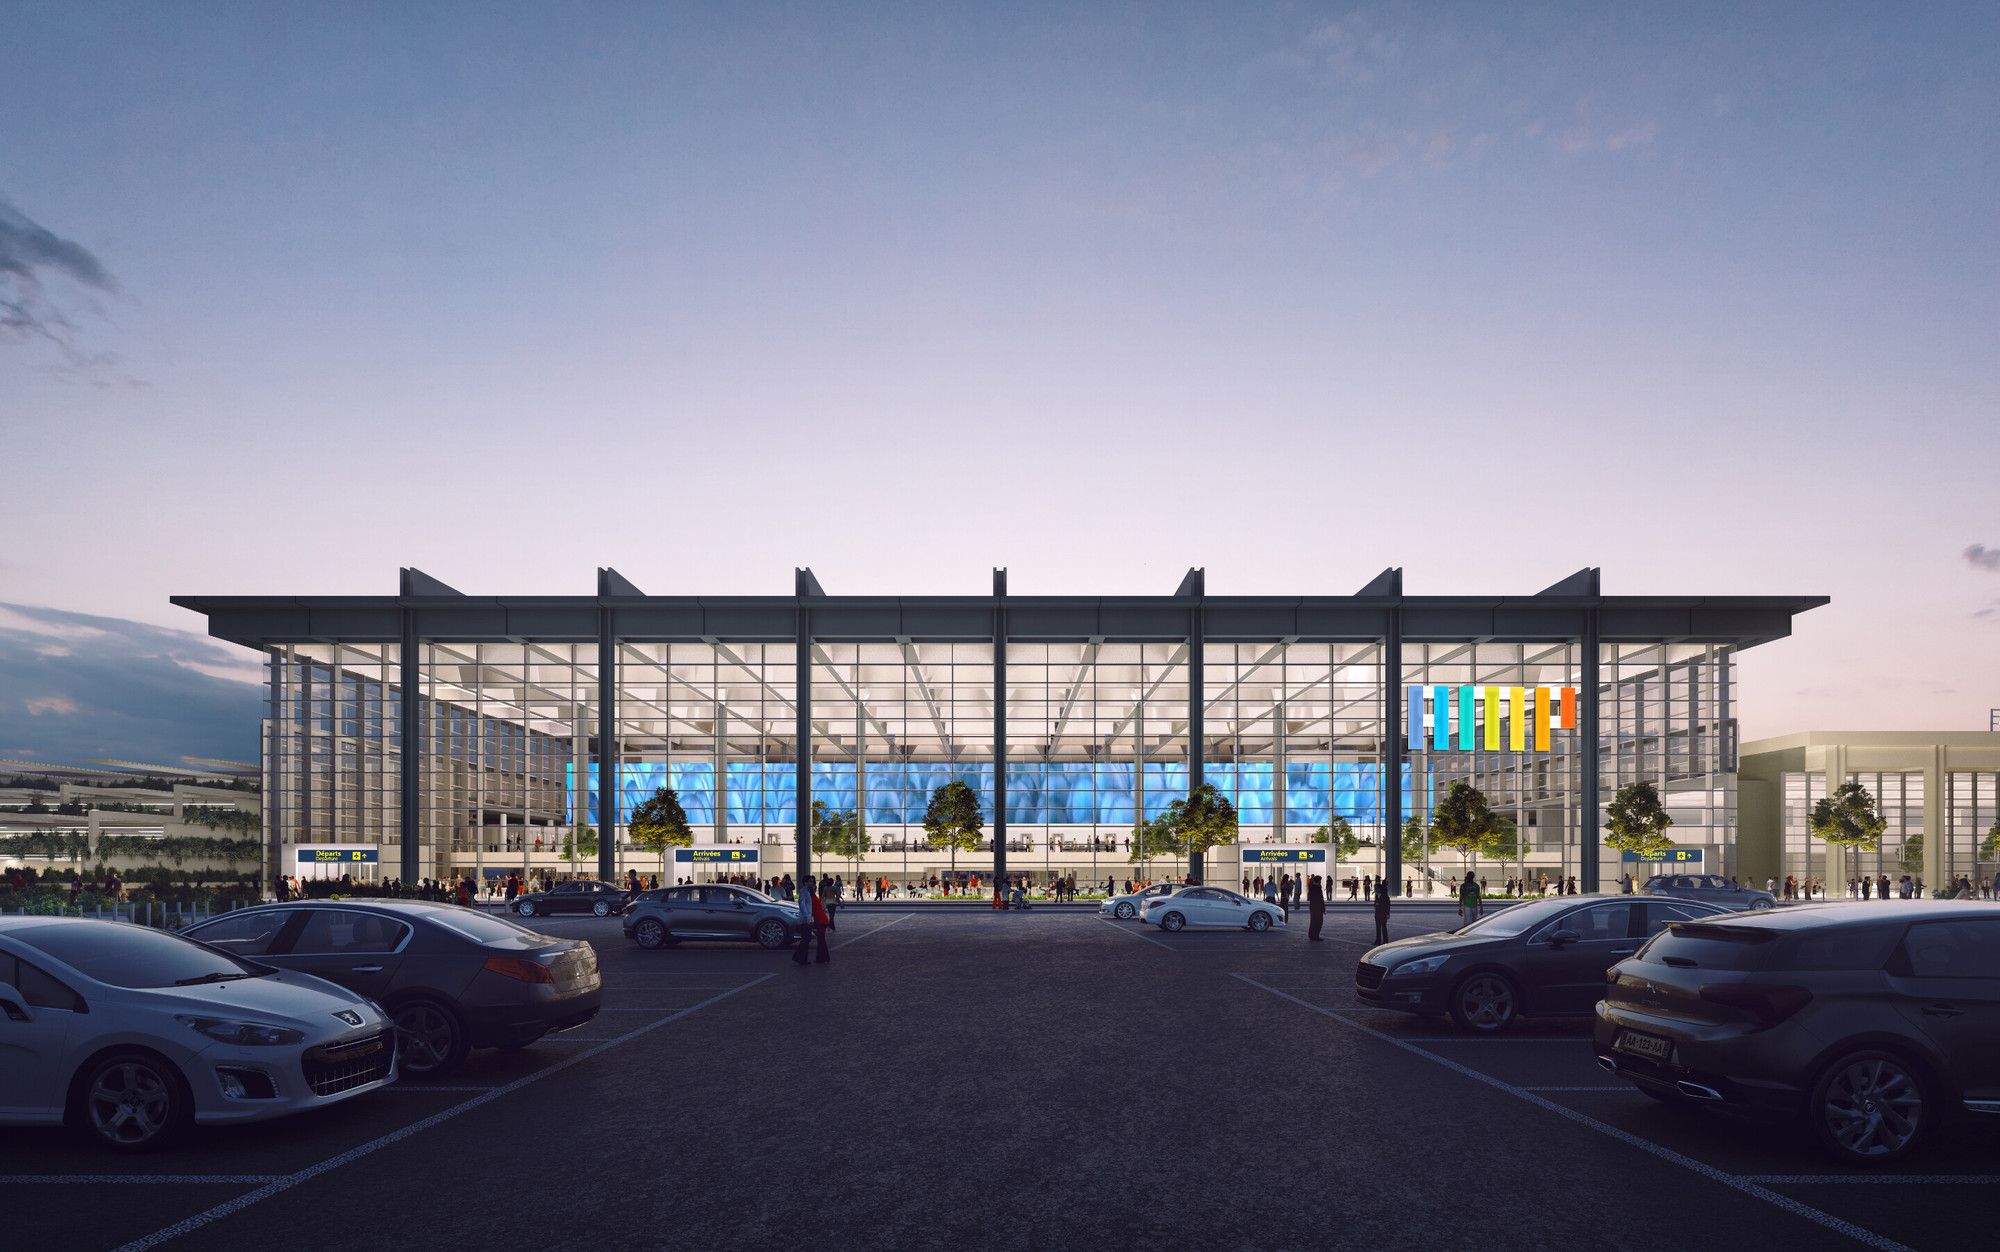 archdaily foster partners selected to design marseille airport extension contemporary. Black Bedroom Furniture Sets. Home Design Ideas